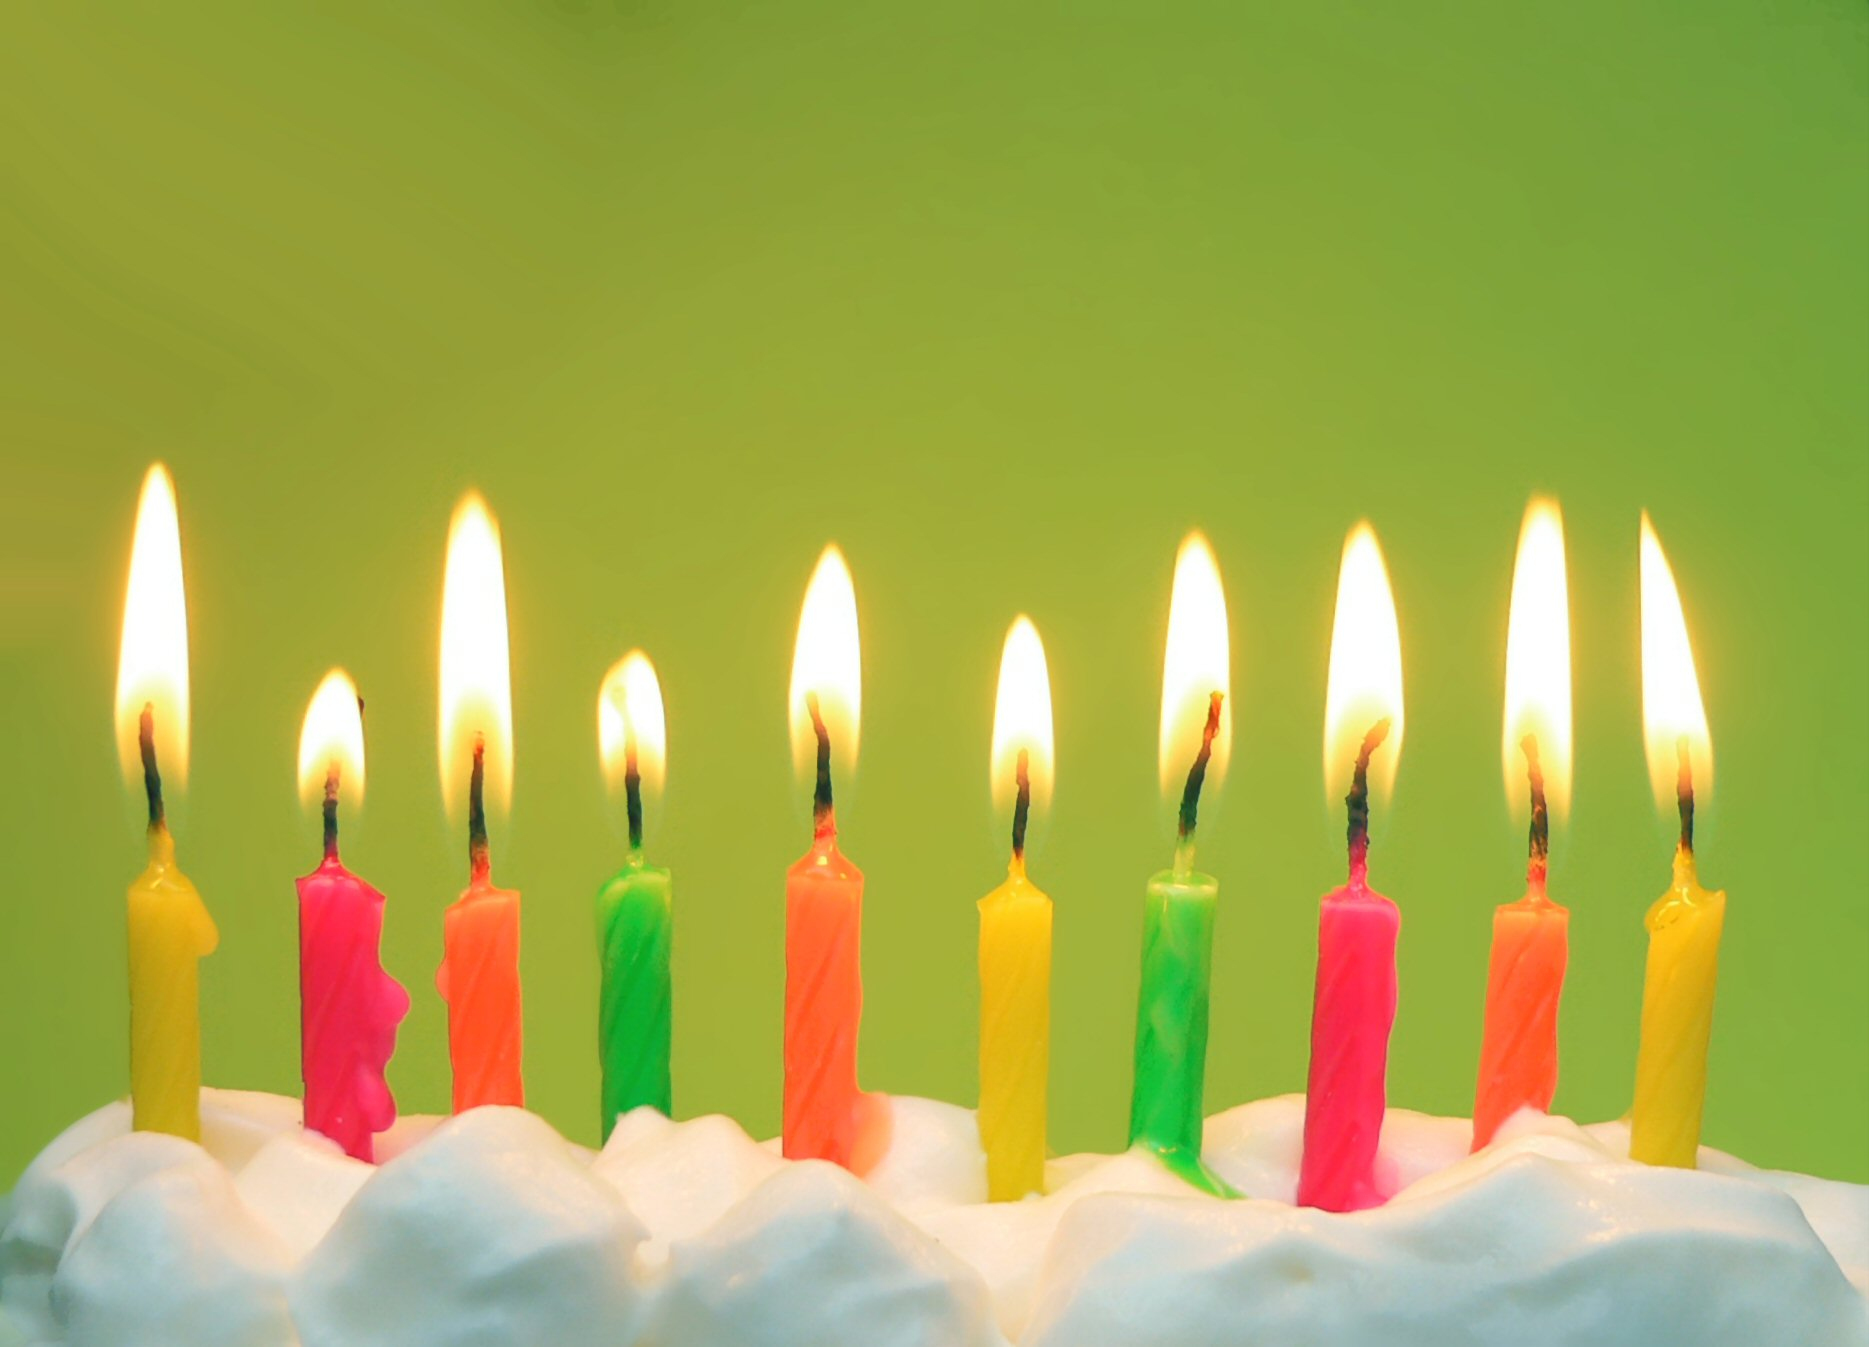 Birthday Candles Wallpaper 4 Goodtimes Party Supply And Rentals